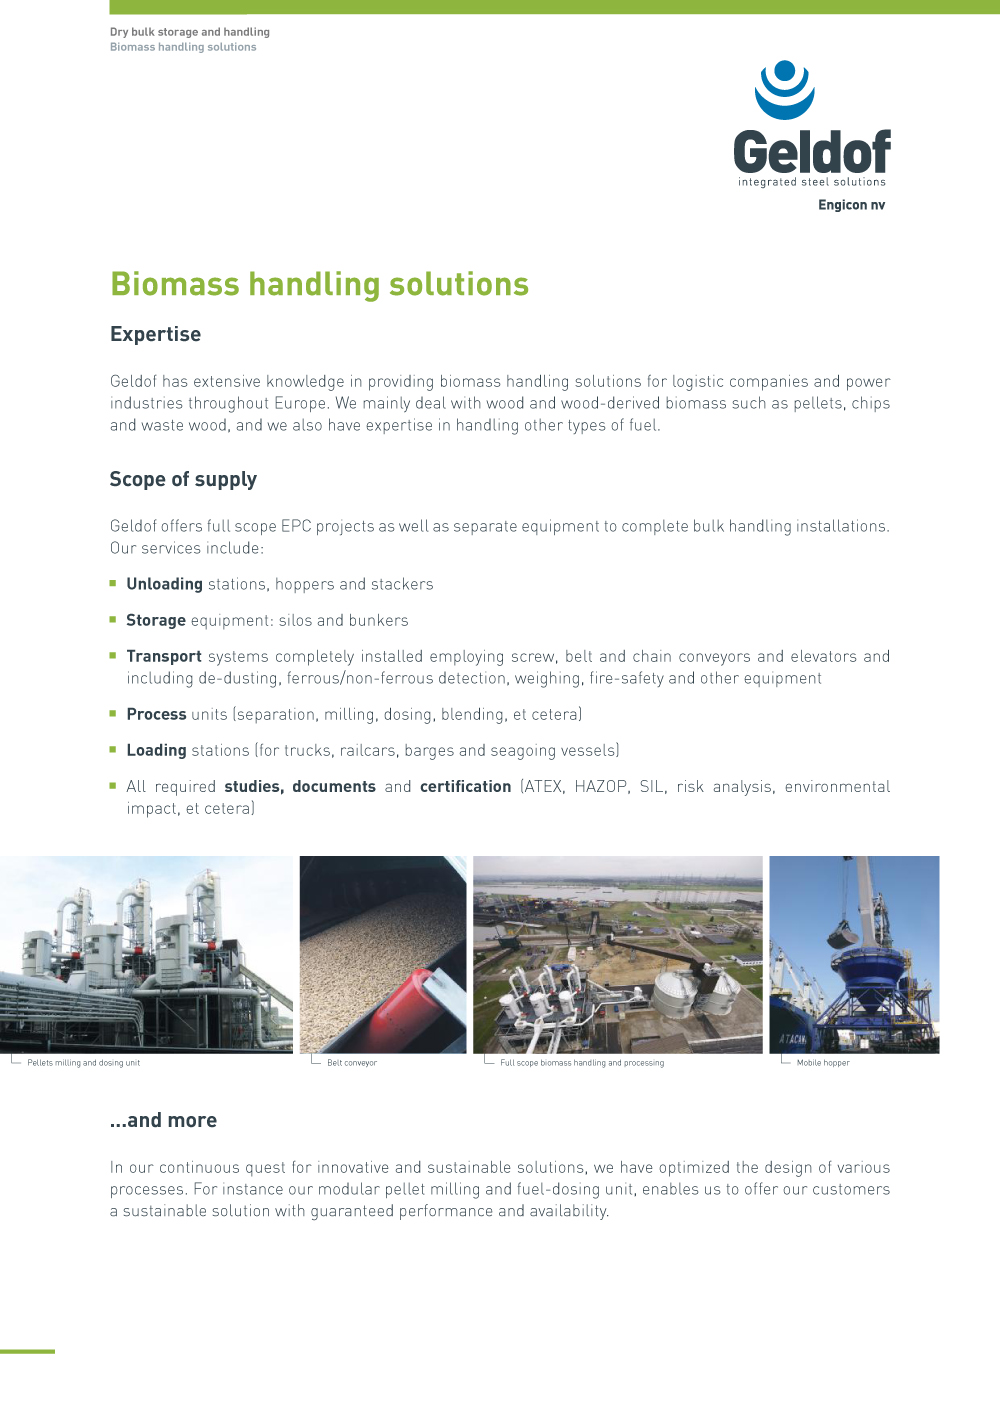 Geldof - Flyer - DB - Biomass handling solutions - EN